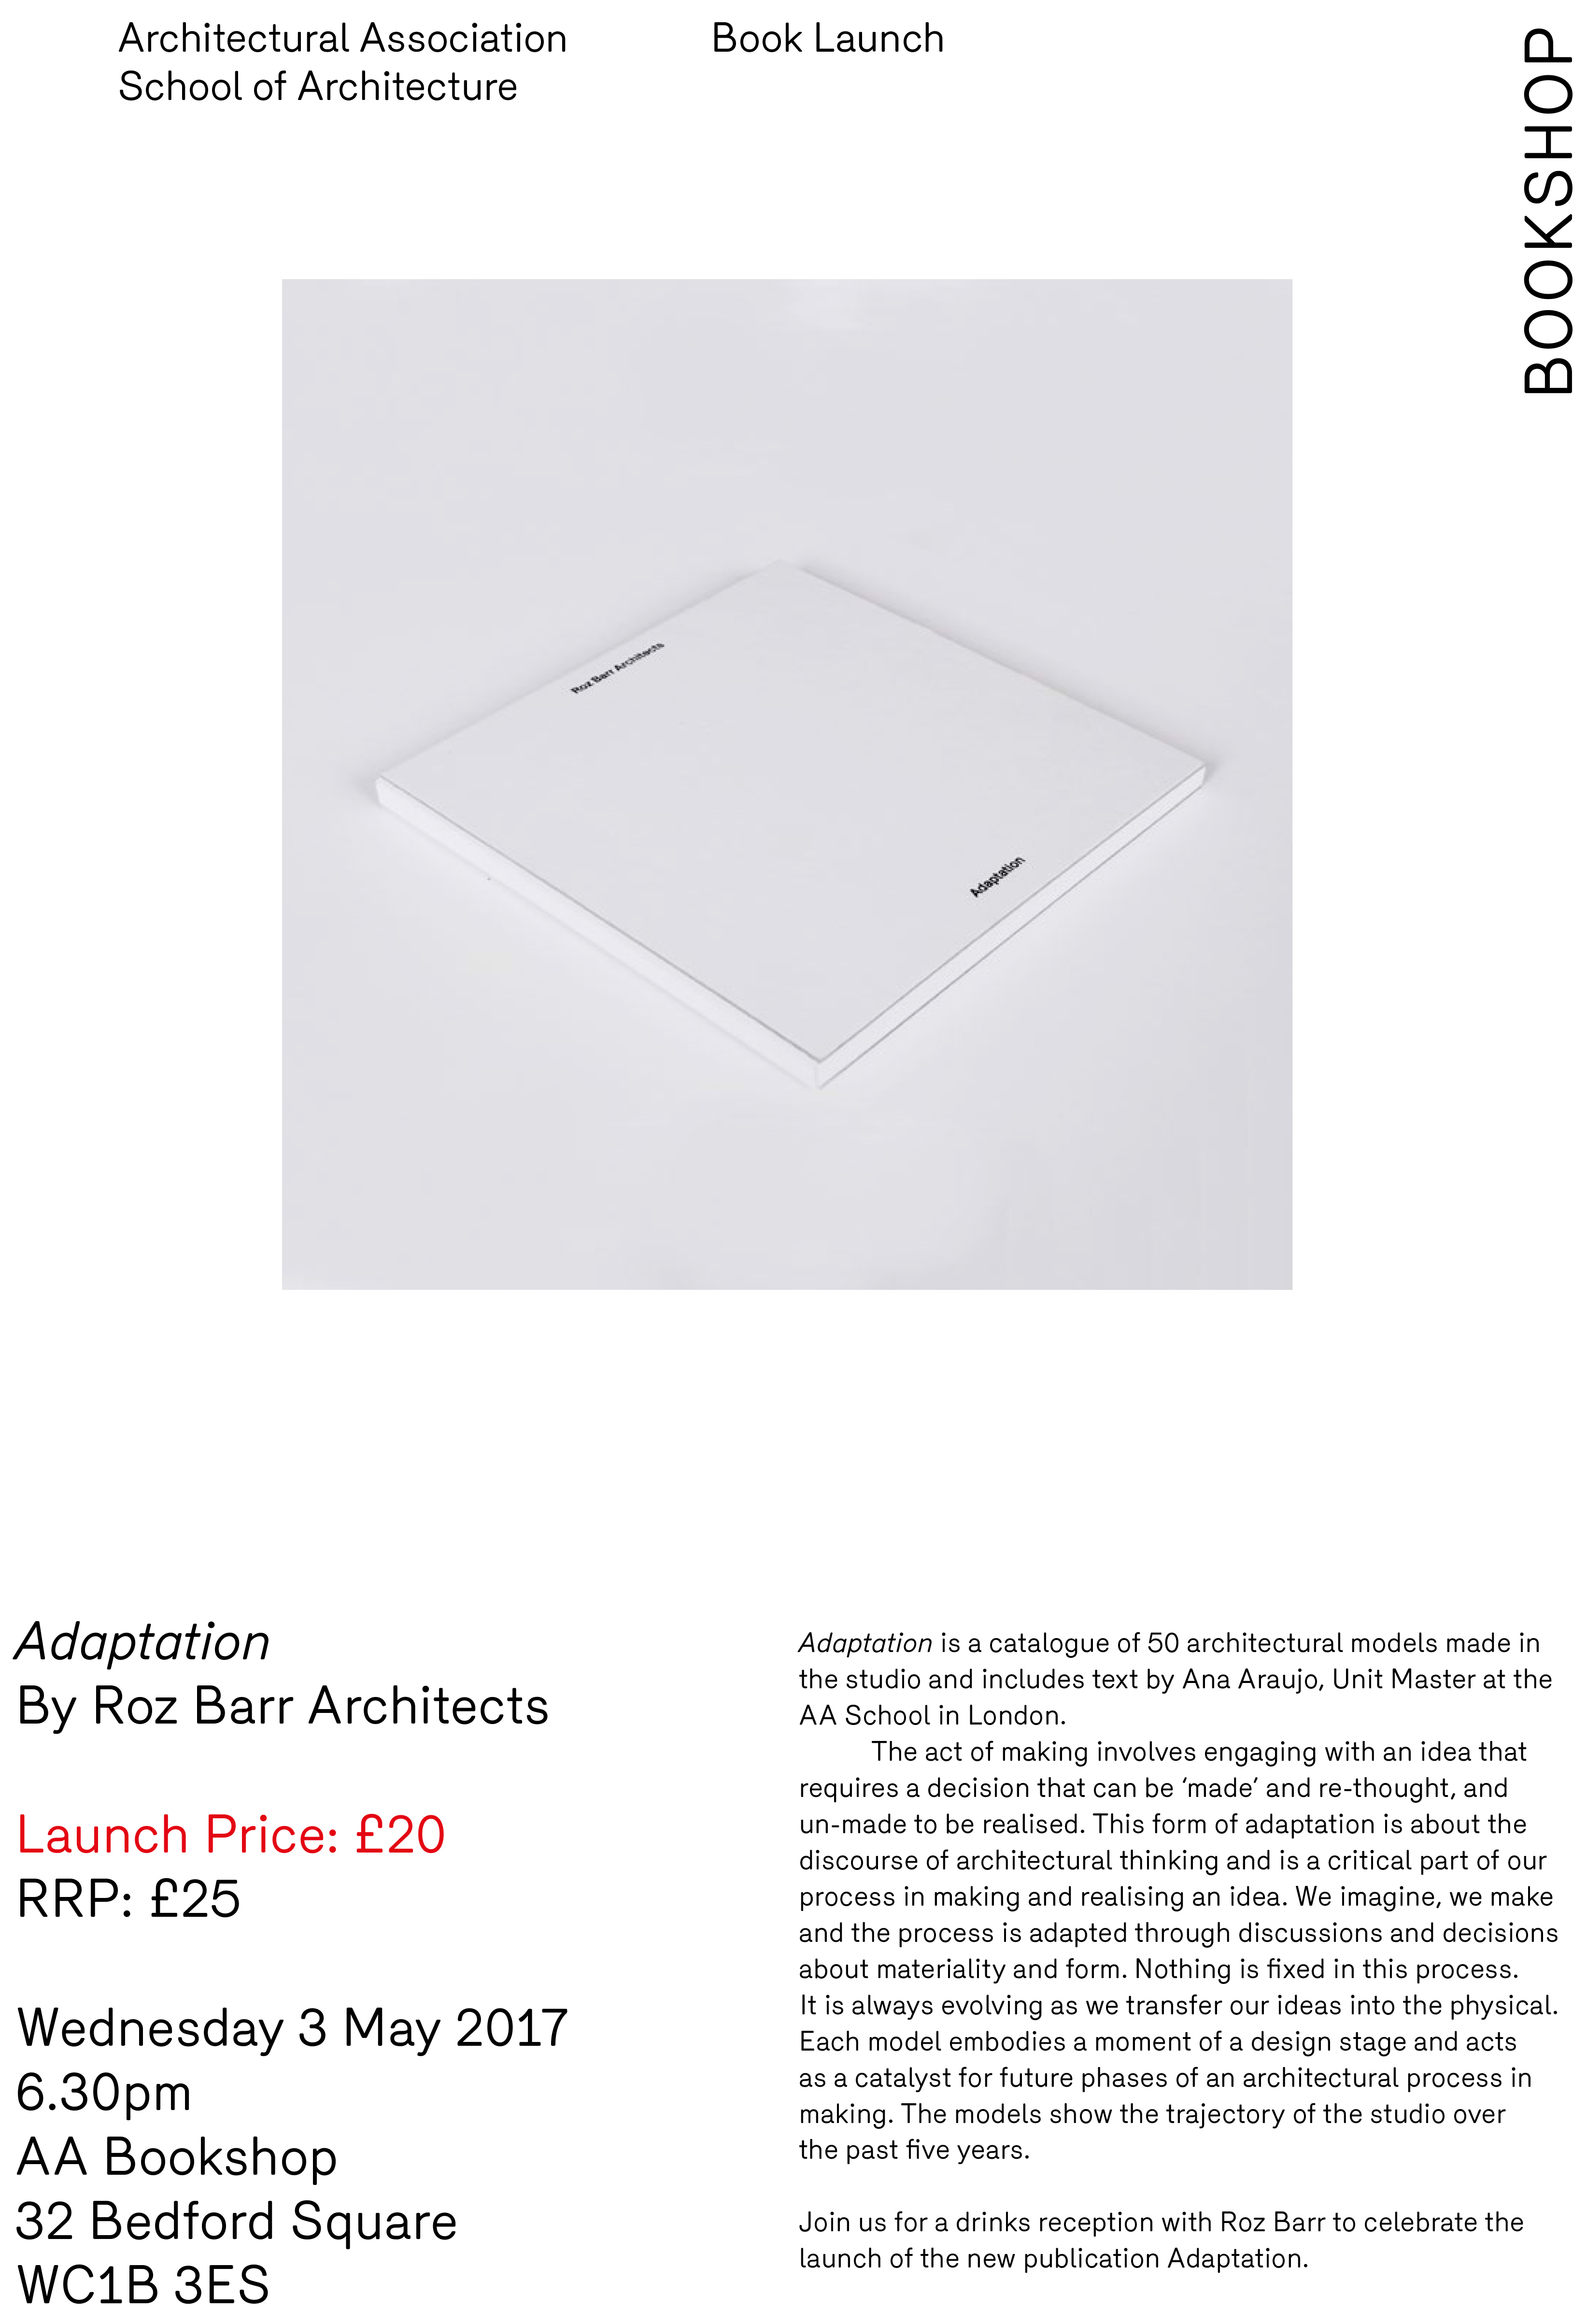 Roz barr architects book launch 3 may aa bookshop 170426 roz barr architects may 2017 ccuart Choice Image